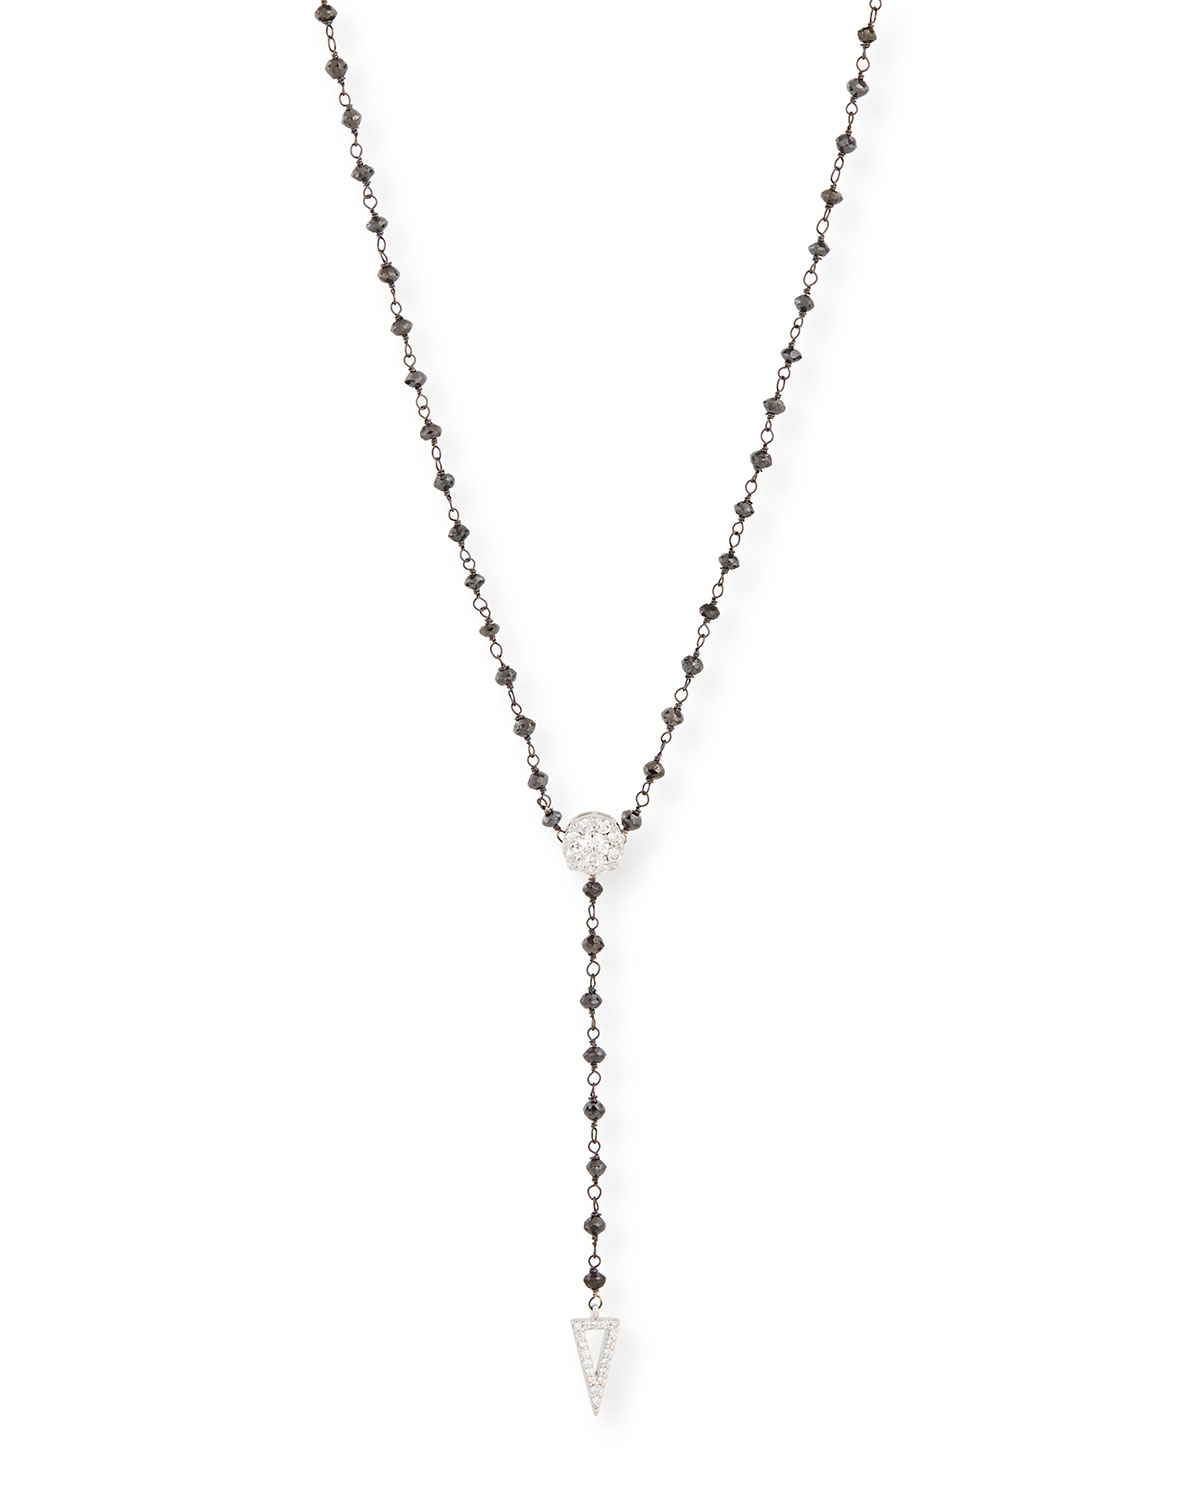 RINA LIMOR Twilight Black & White Diamond Y Necklace